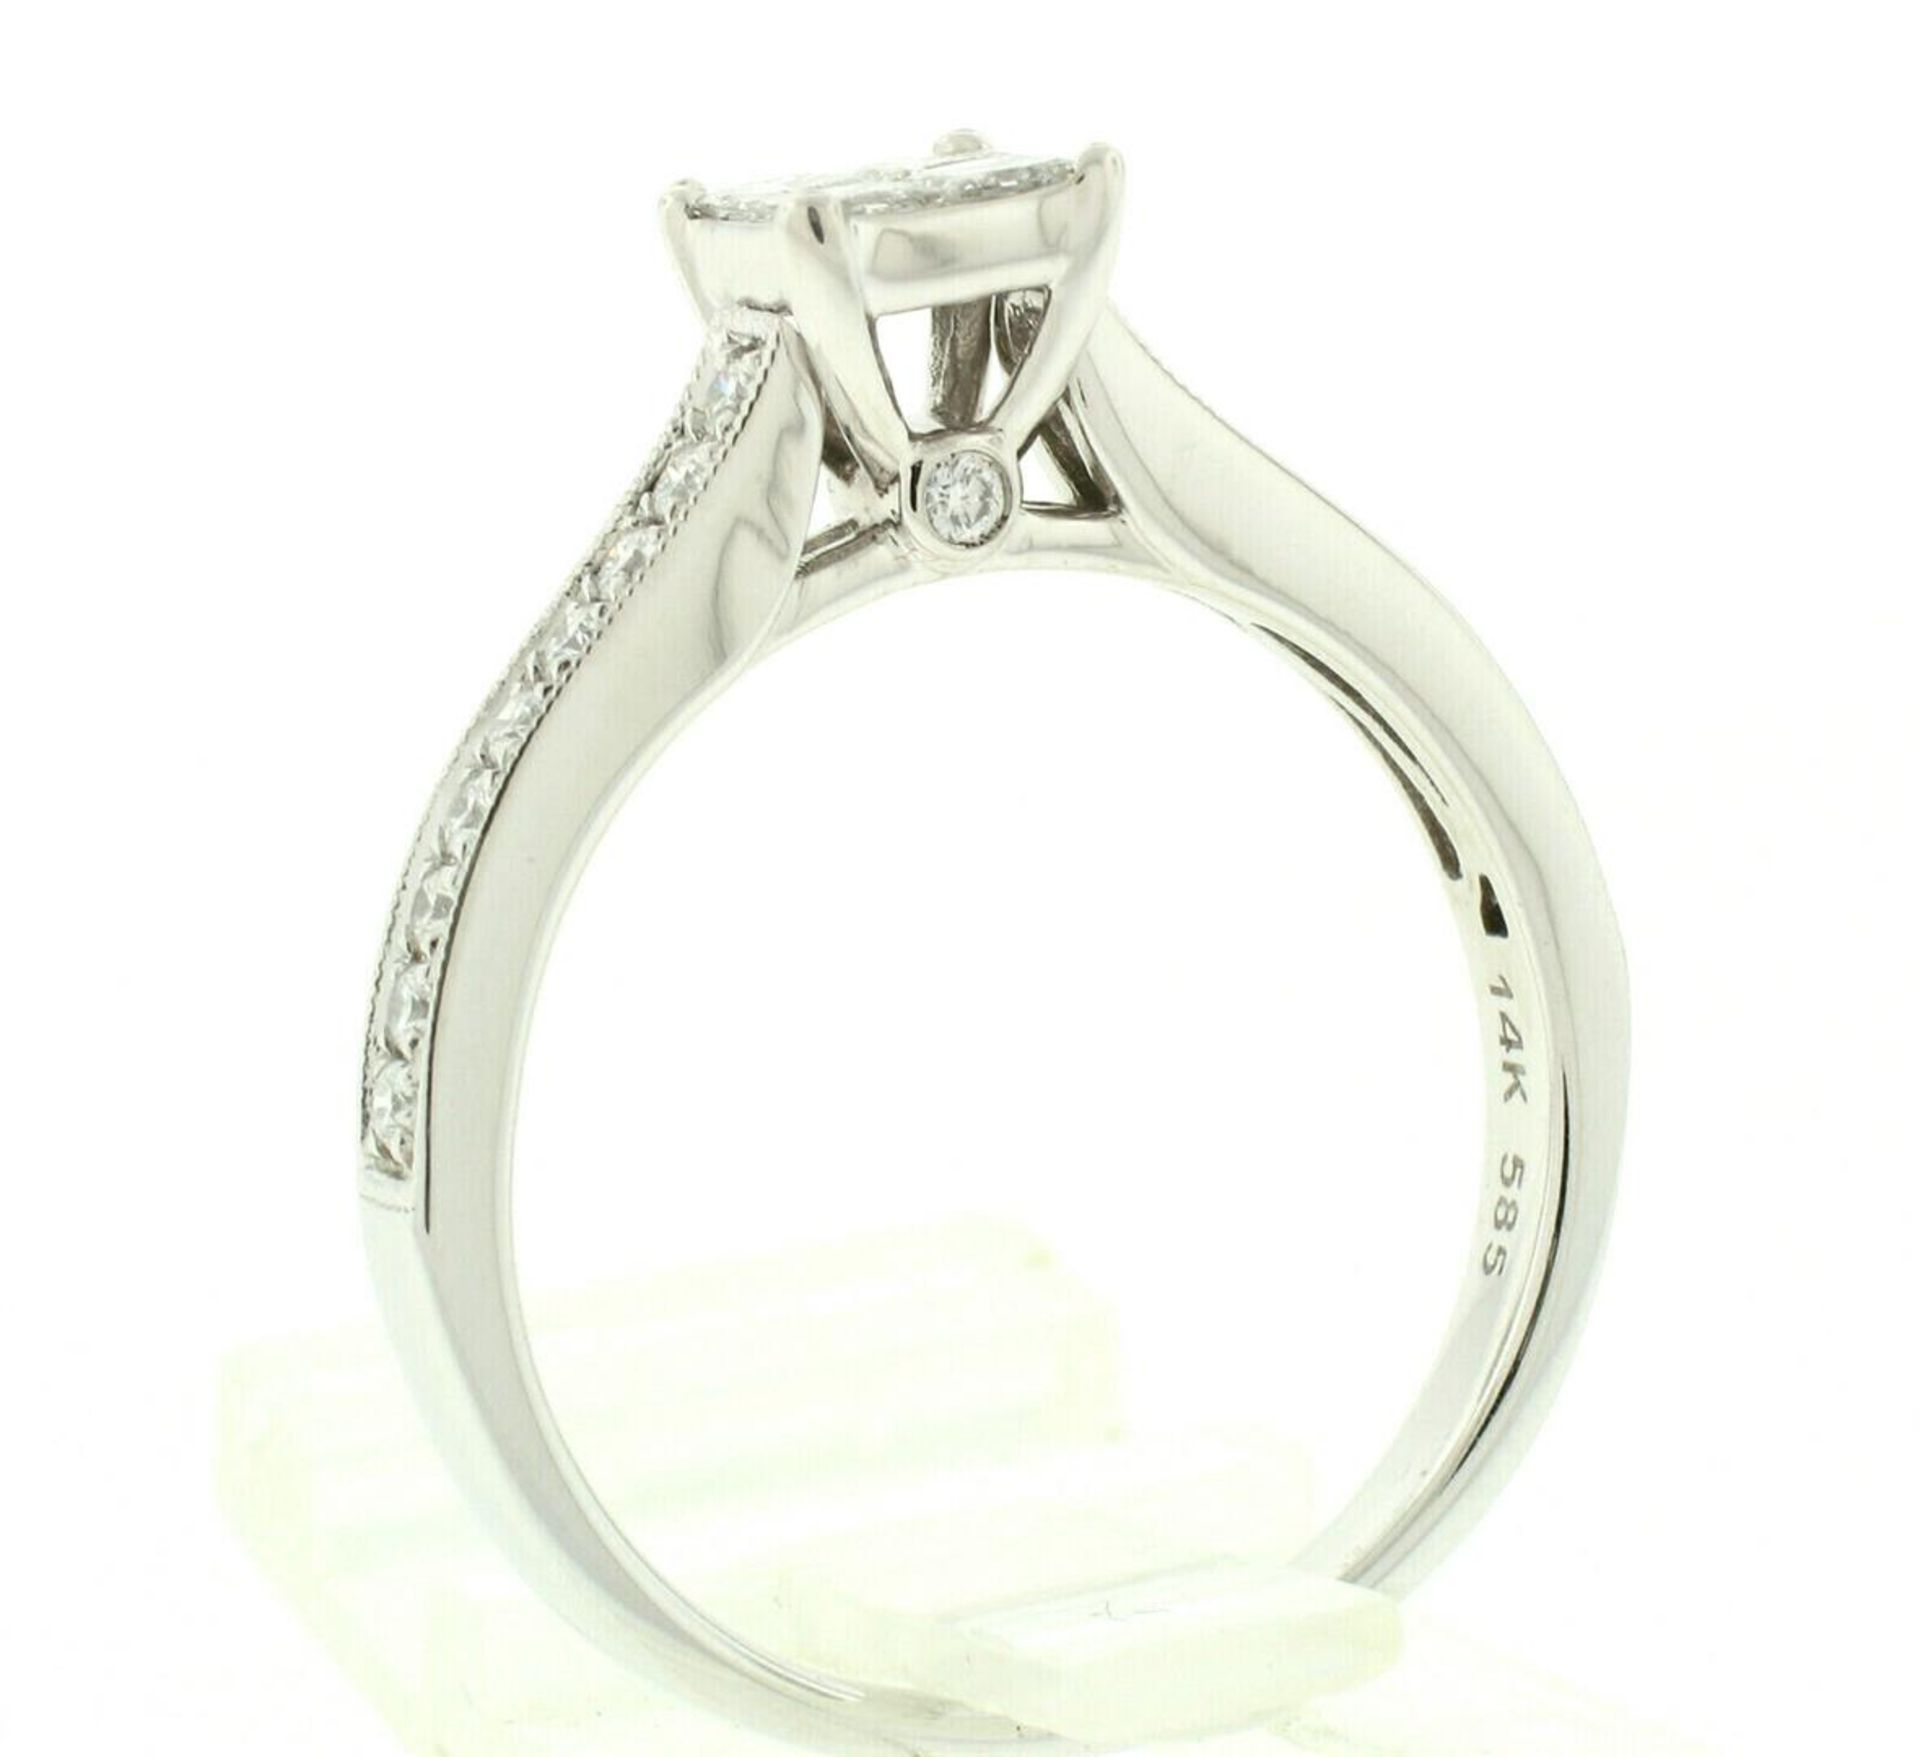 14k White Gold 0.79ctw Illusion Solitaire Princess Cut Diamond Engagement Ring - Image 3 of 8